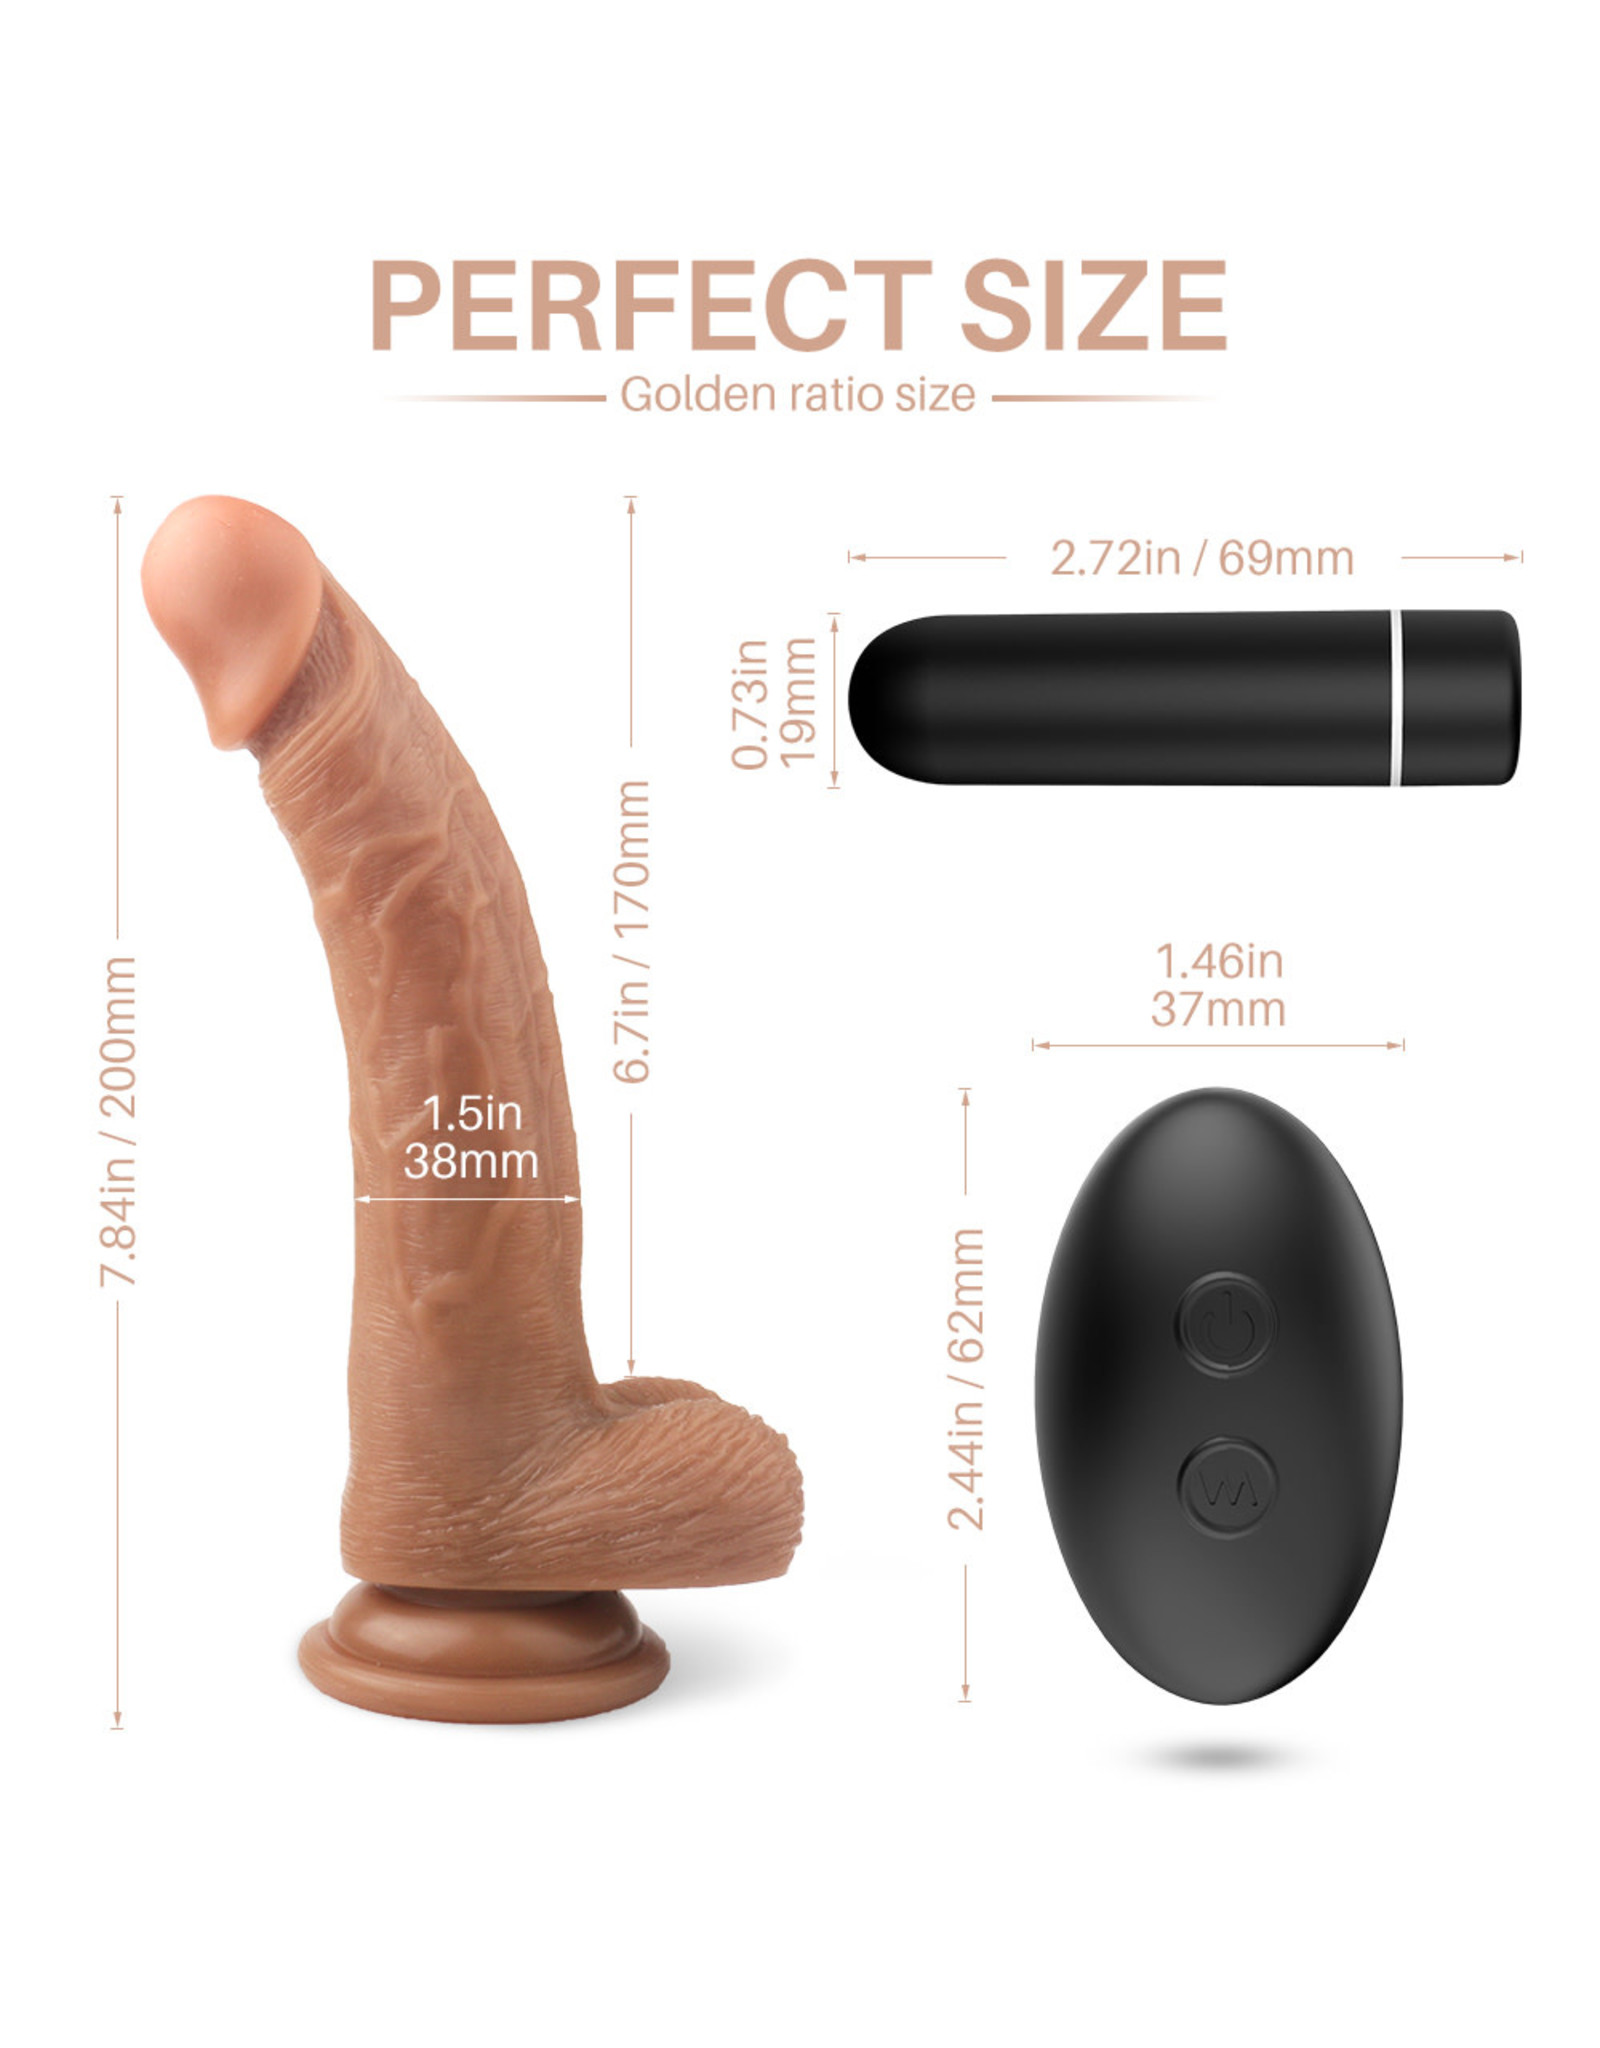 Babylon Babylon Willy Nilly Vibrating Cock w Suction and RC